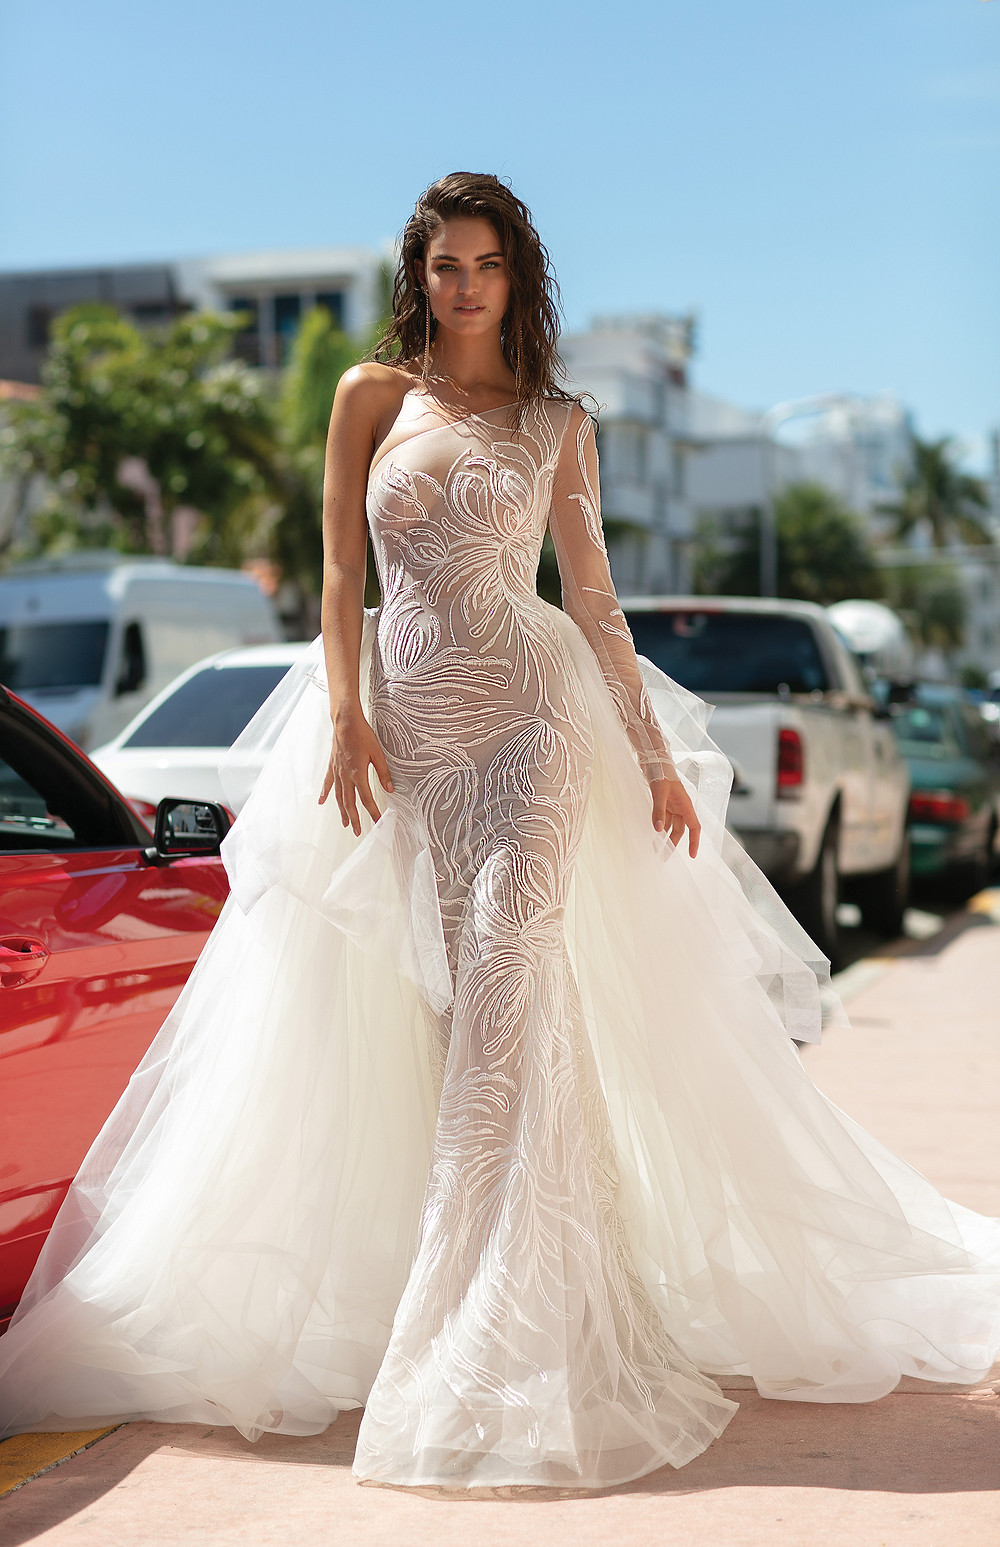 A Berta sexy one shoulder mermaid wedding dress with a detachable skirt or overskirt and a swirl pattern